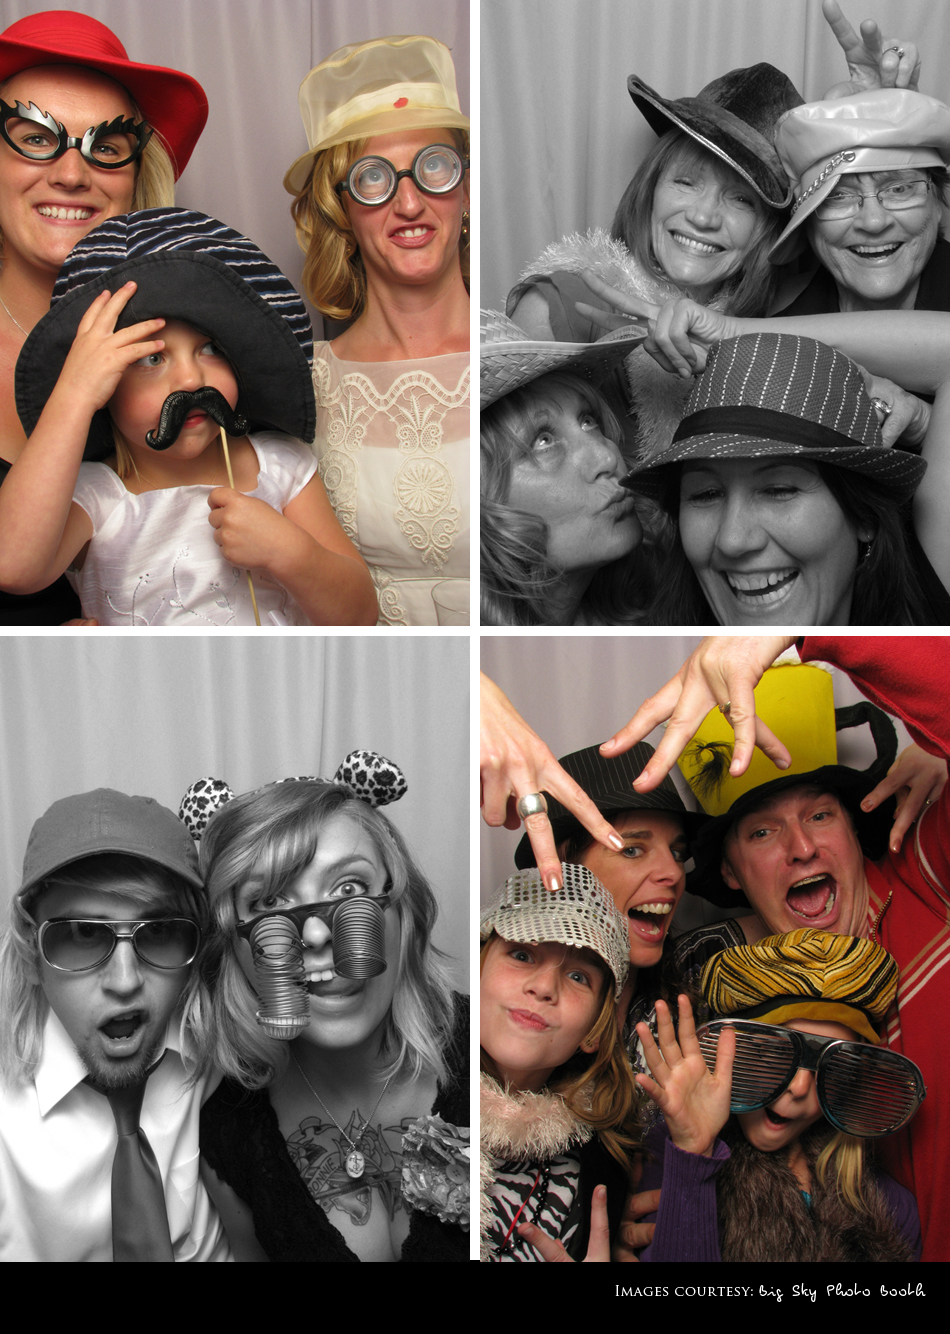 Big Sky Photo Booth